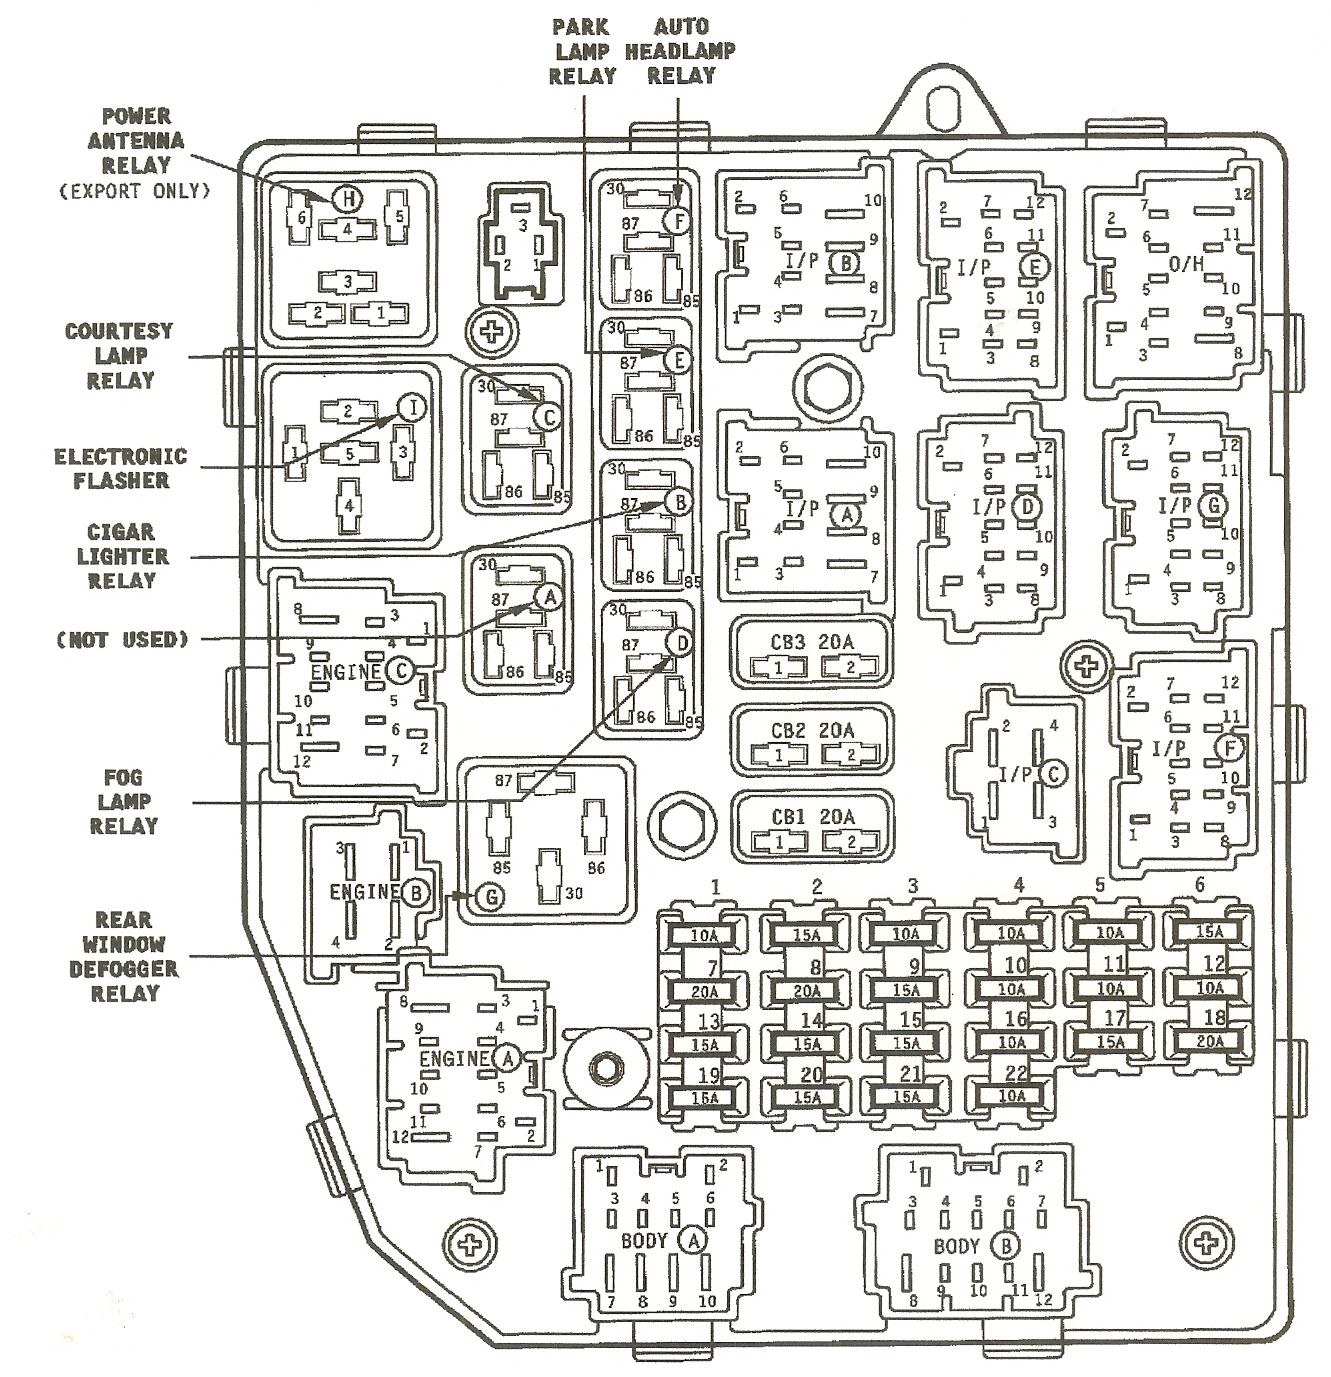 hight resolution of 1996 jeep grand cherokee limited fuse box wiring diagram blogs 2000 ford windstar interior fuse box diagram 1996 jeep grand cherokee interior fuse box